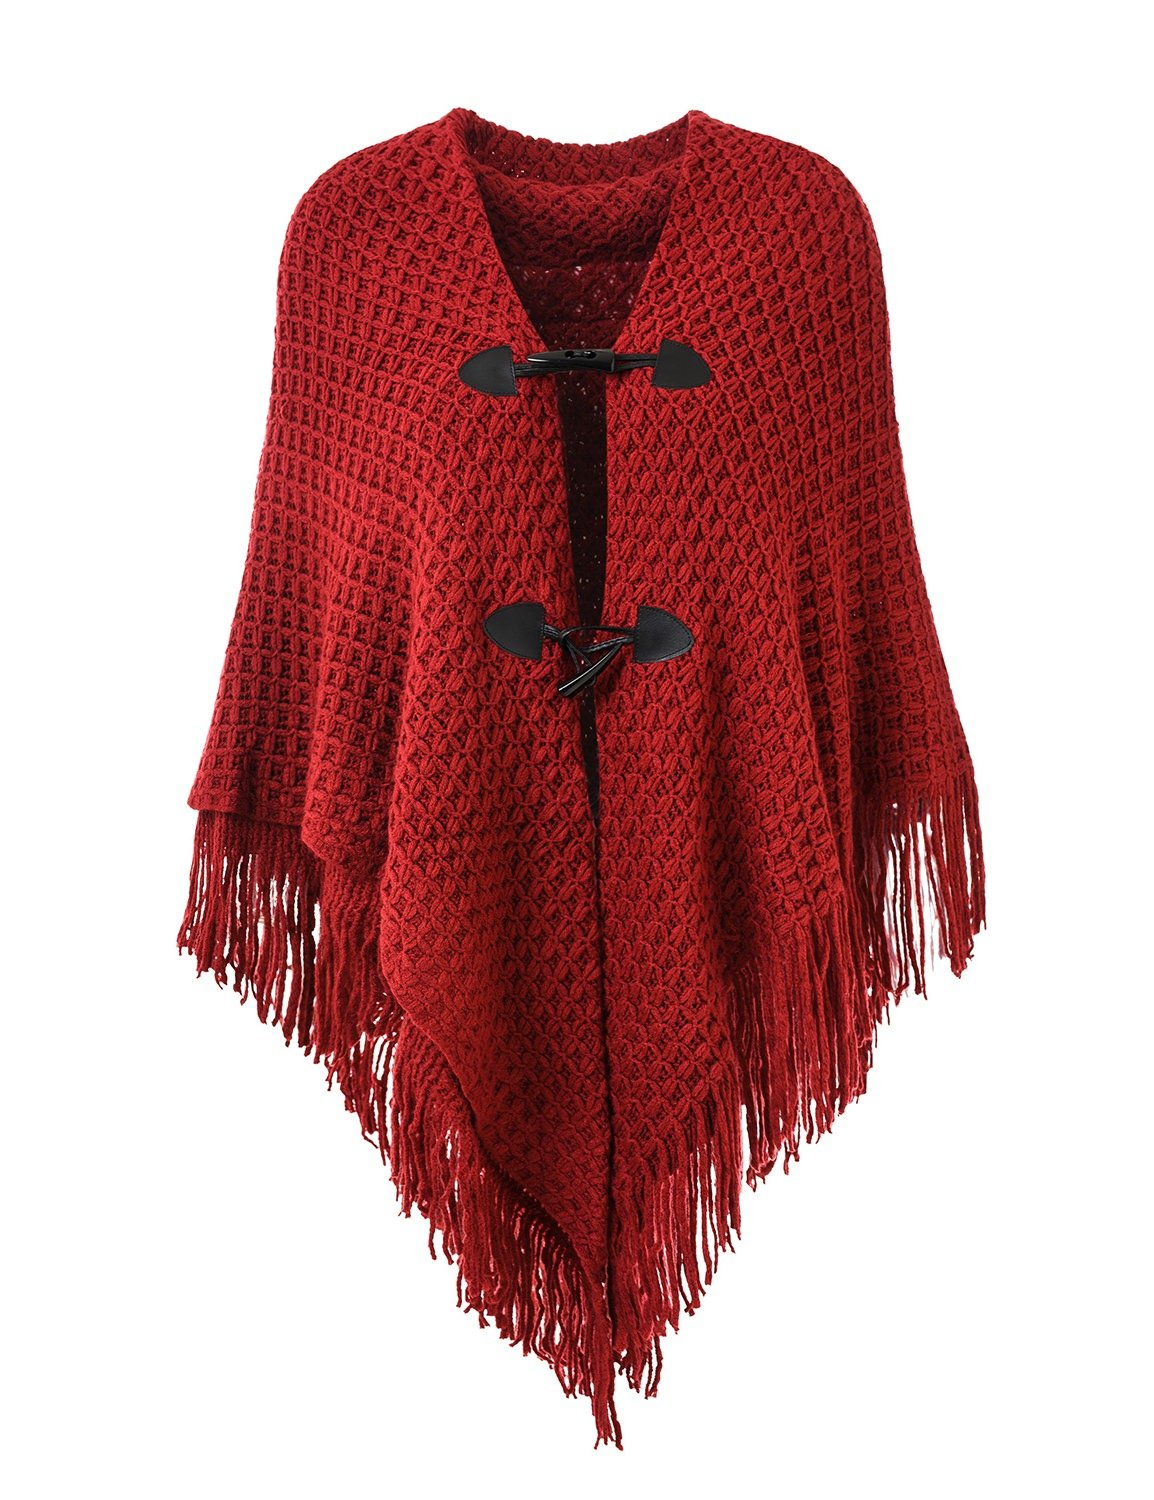 Ferand Women's Loose Fitting Poncho Cape Shawl with Stylish Horn Buttons, V Neckline and V Hem, Burgundy (Larger & Thicker Style)